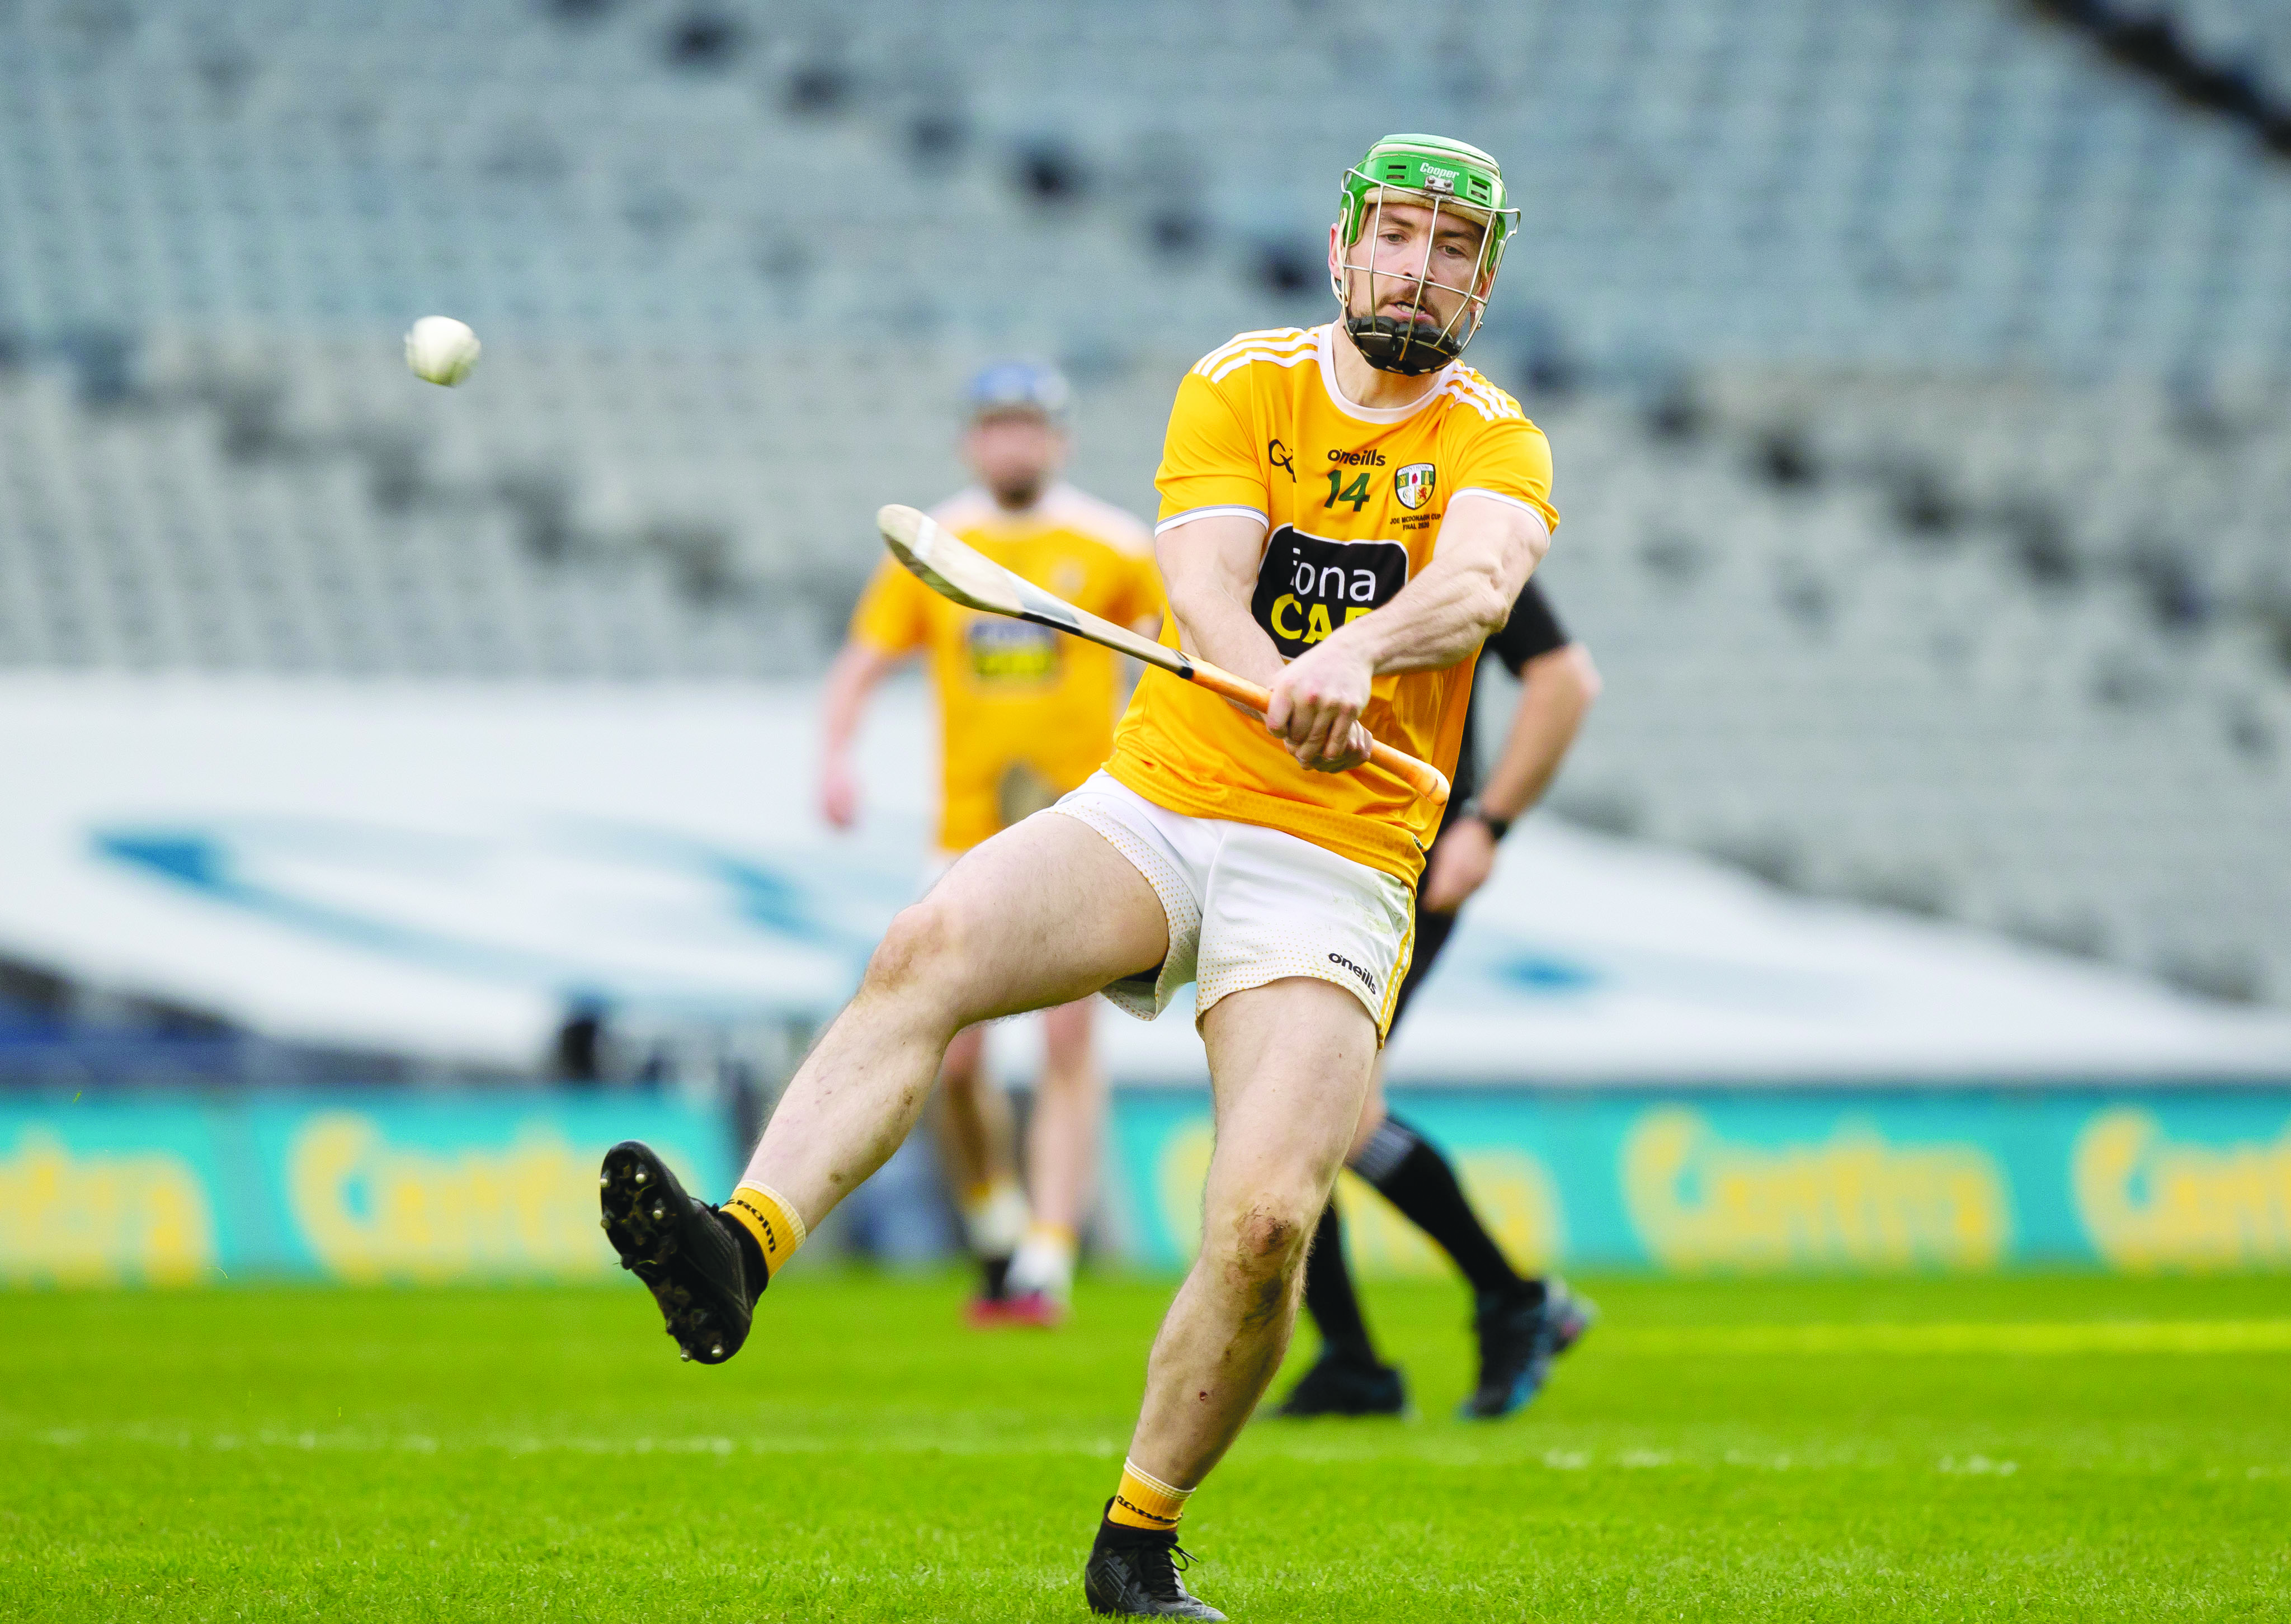 Antrim hurling captain Conor McCann says he and his team-mates will use the criticism from doubters as motivation going into the new season